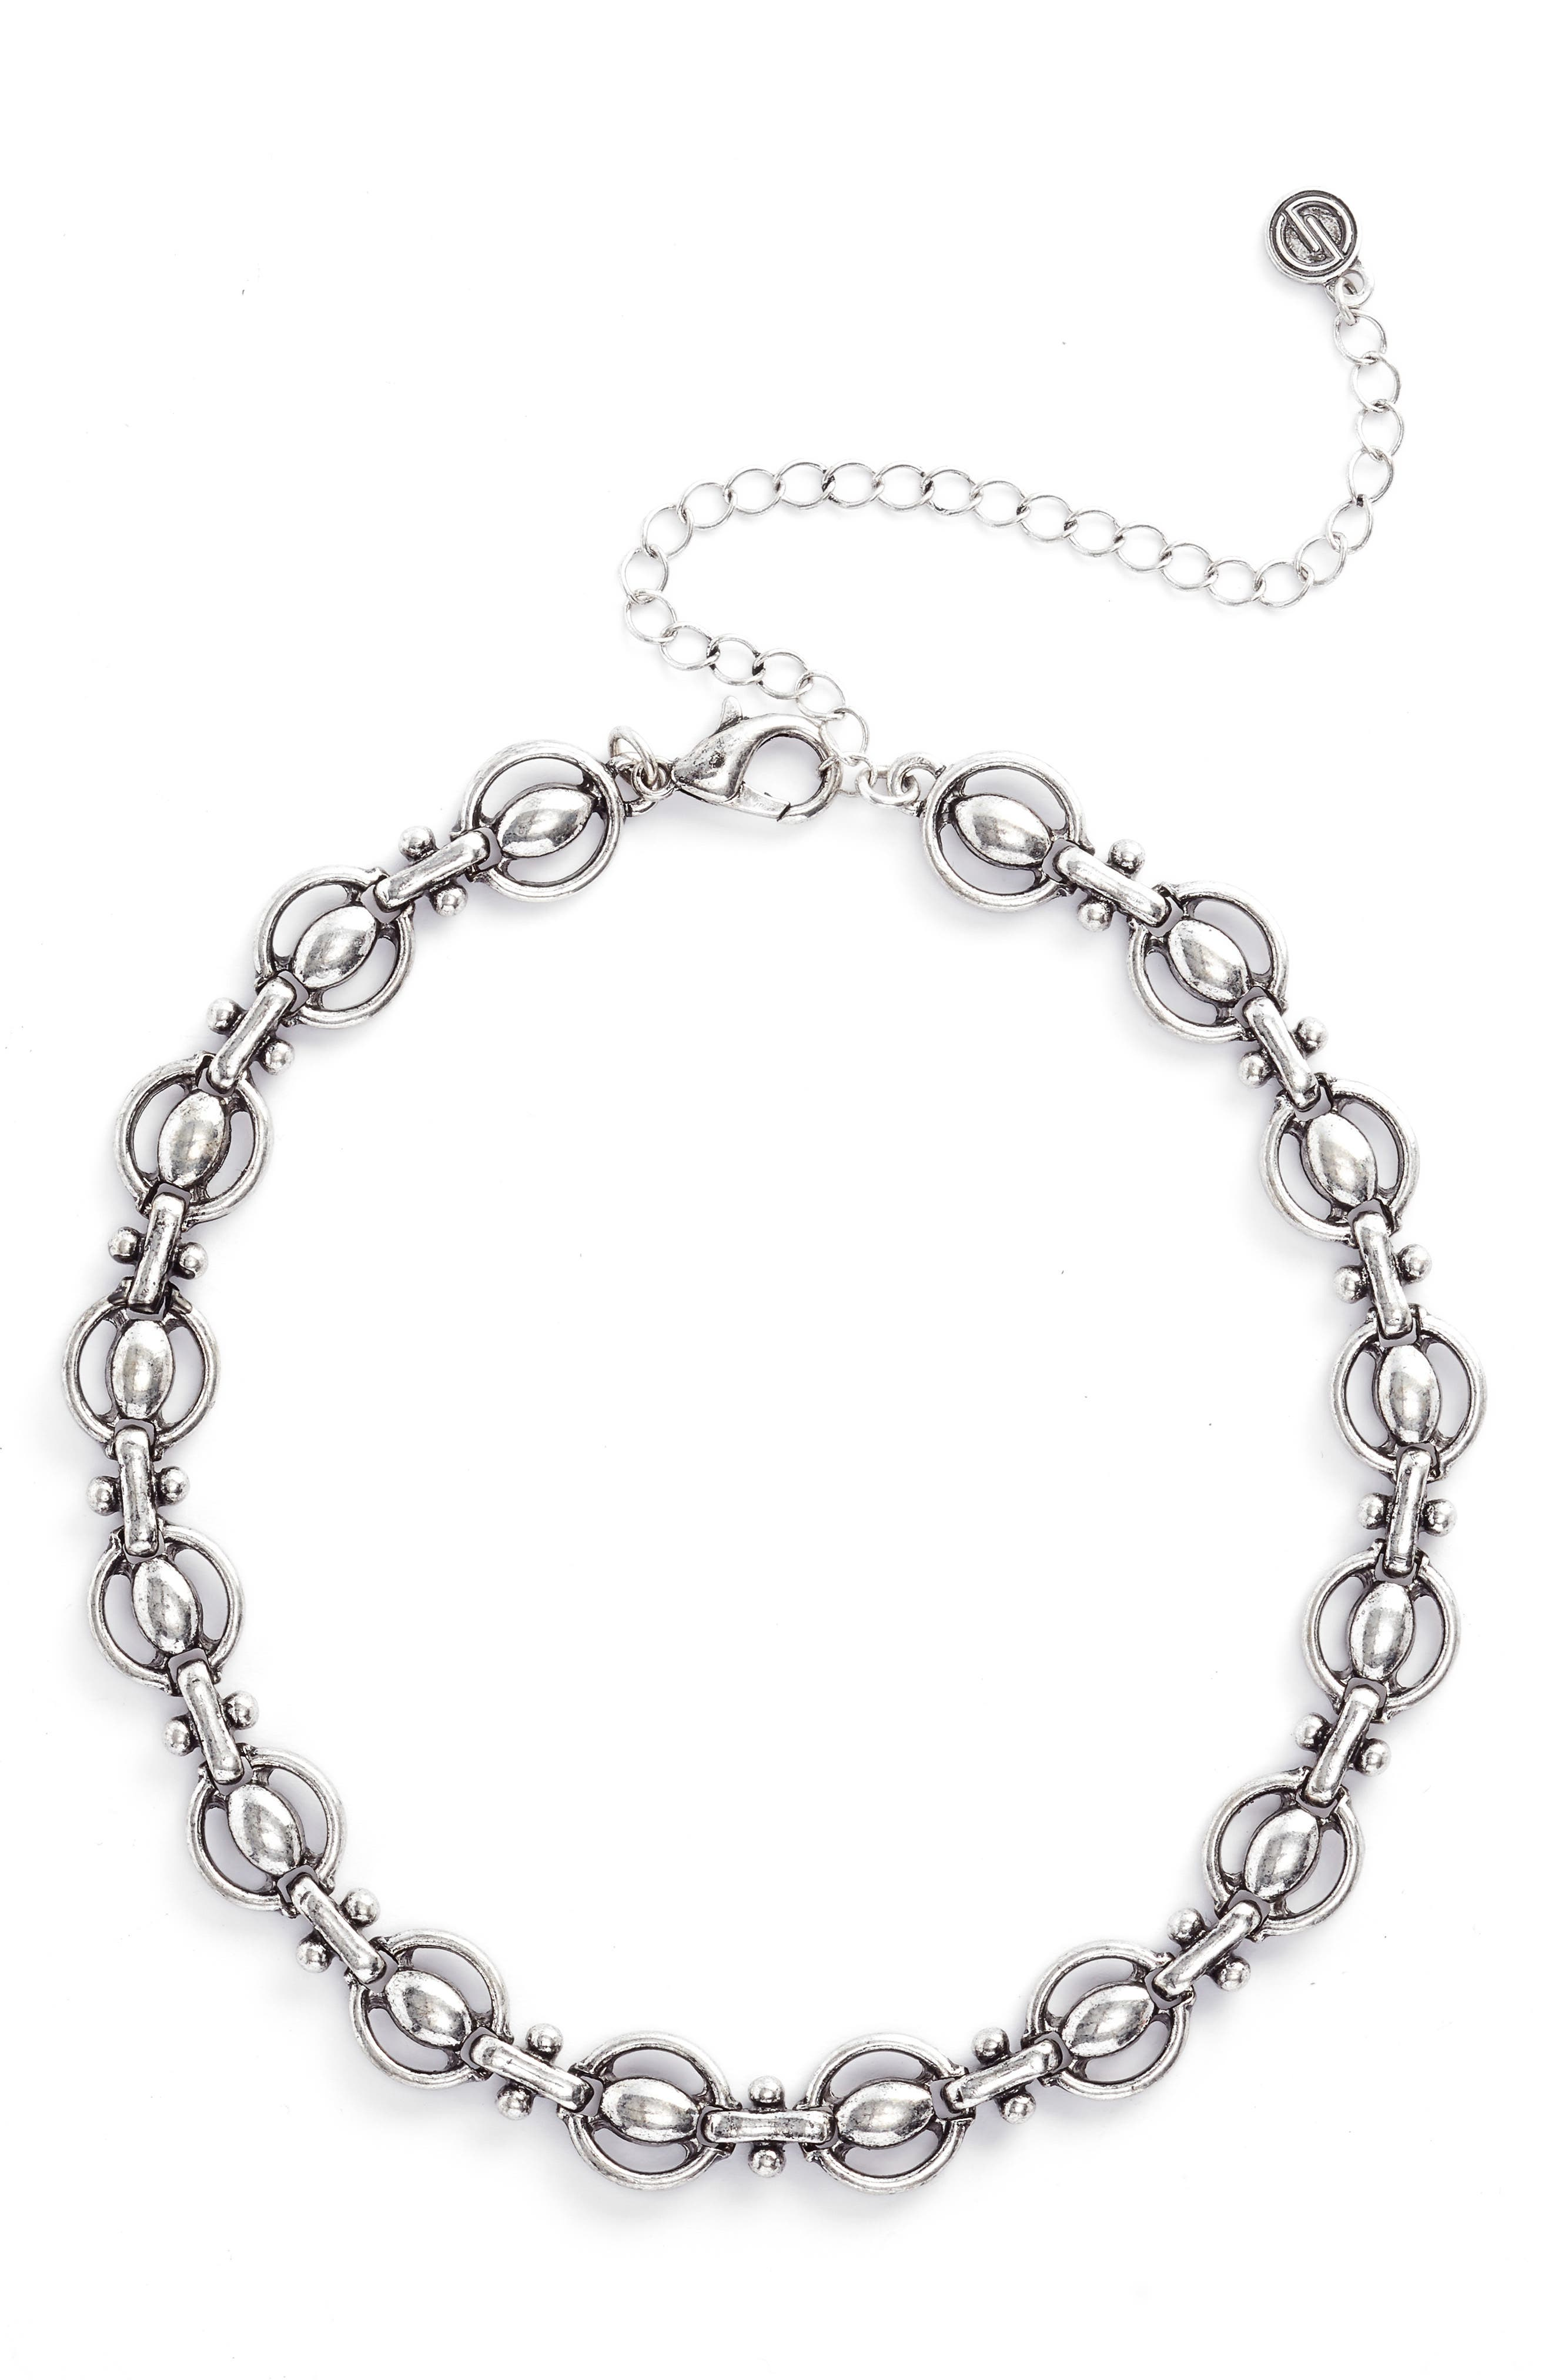 Alternate Image 1 Selected - DLNLX BY DYLANLEX Chain Choker